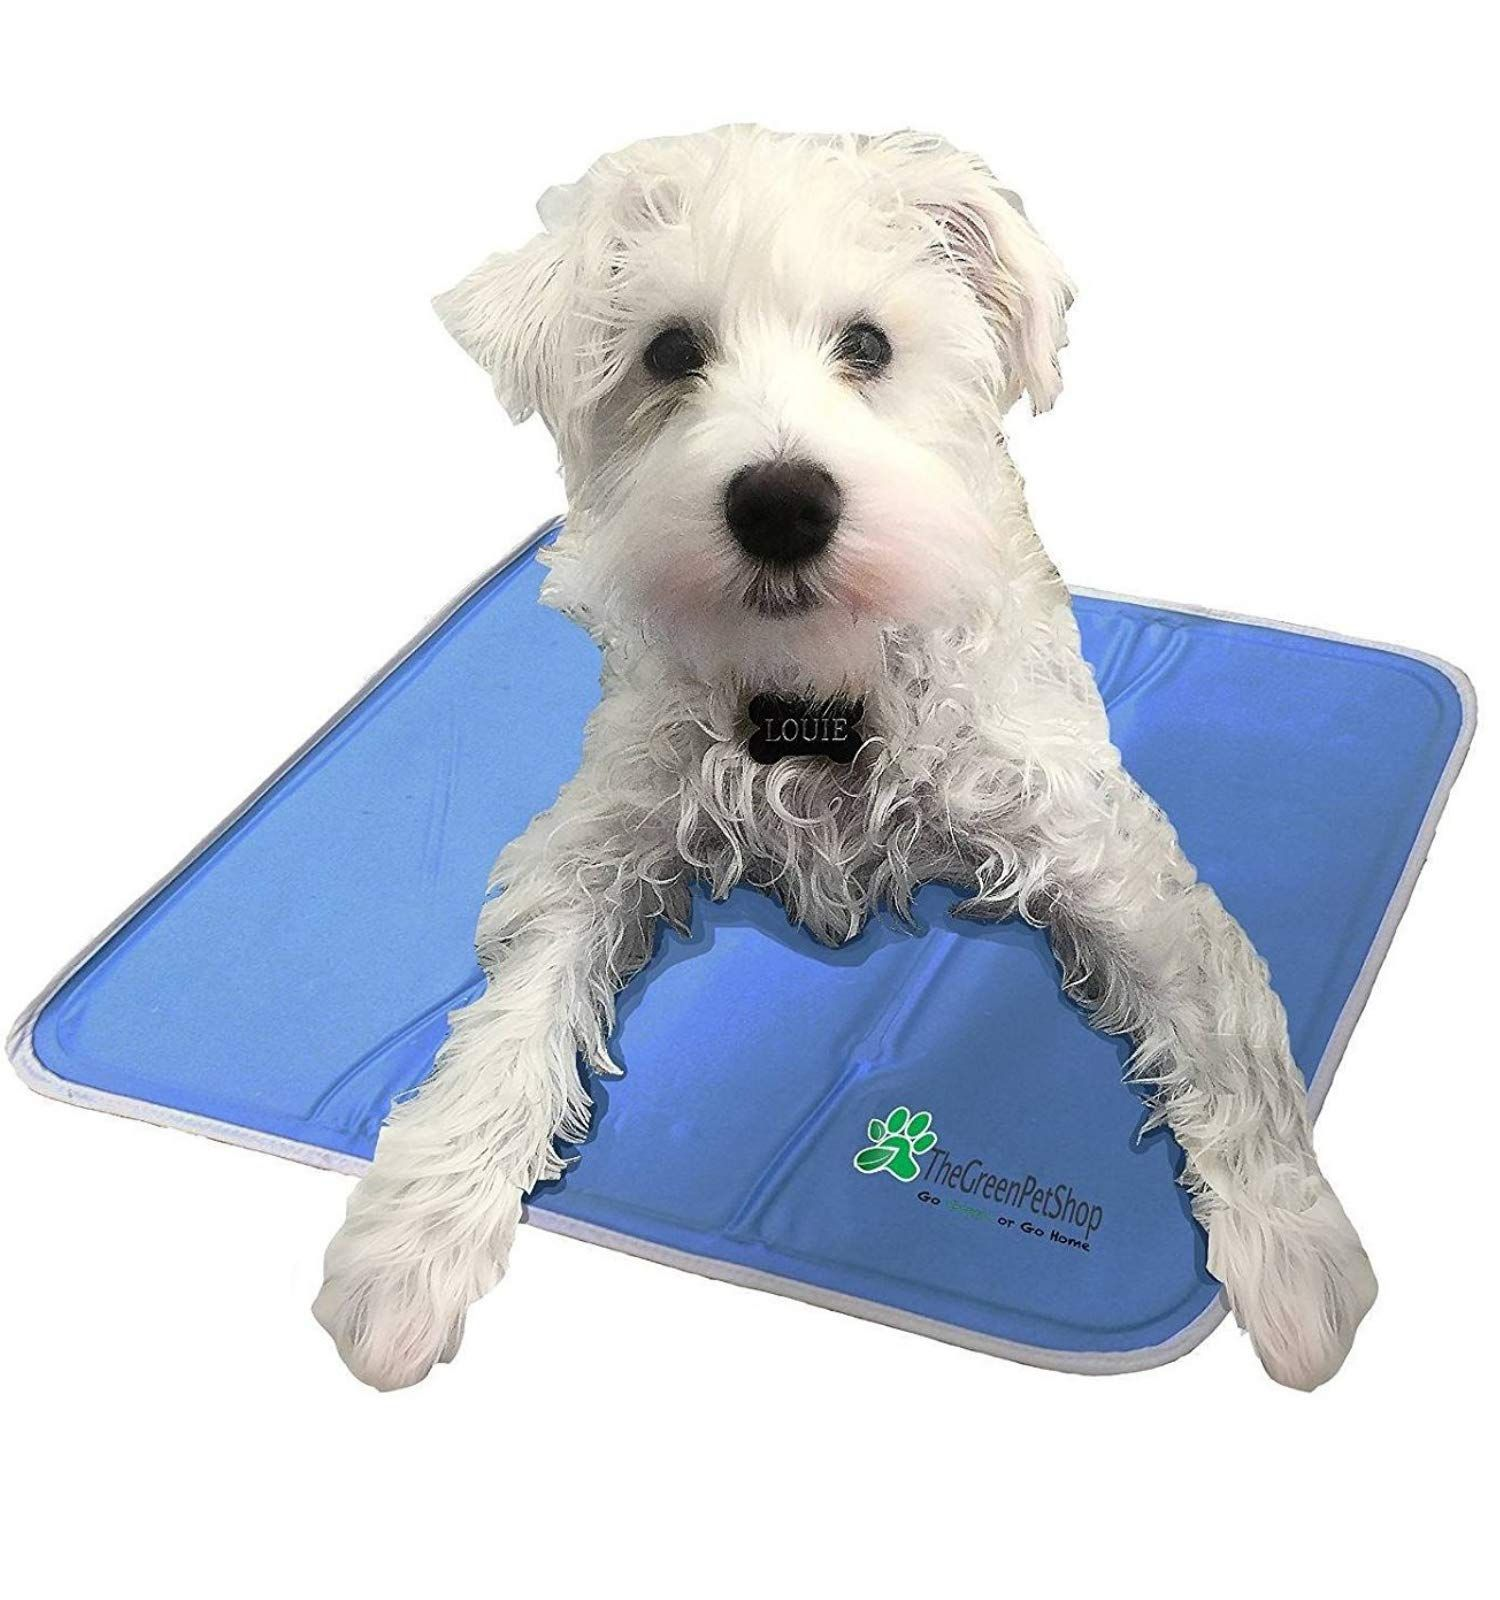 The Green Pet Shop Dog Cooling Mat Pressure Activated Gel